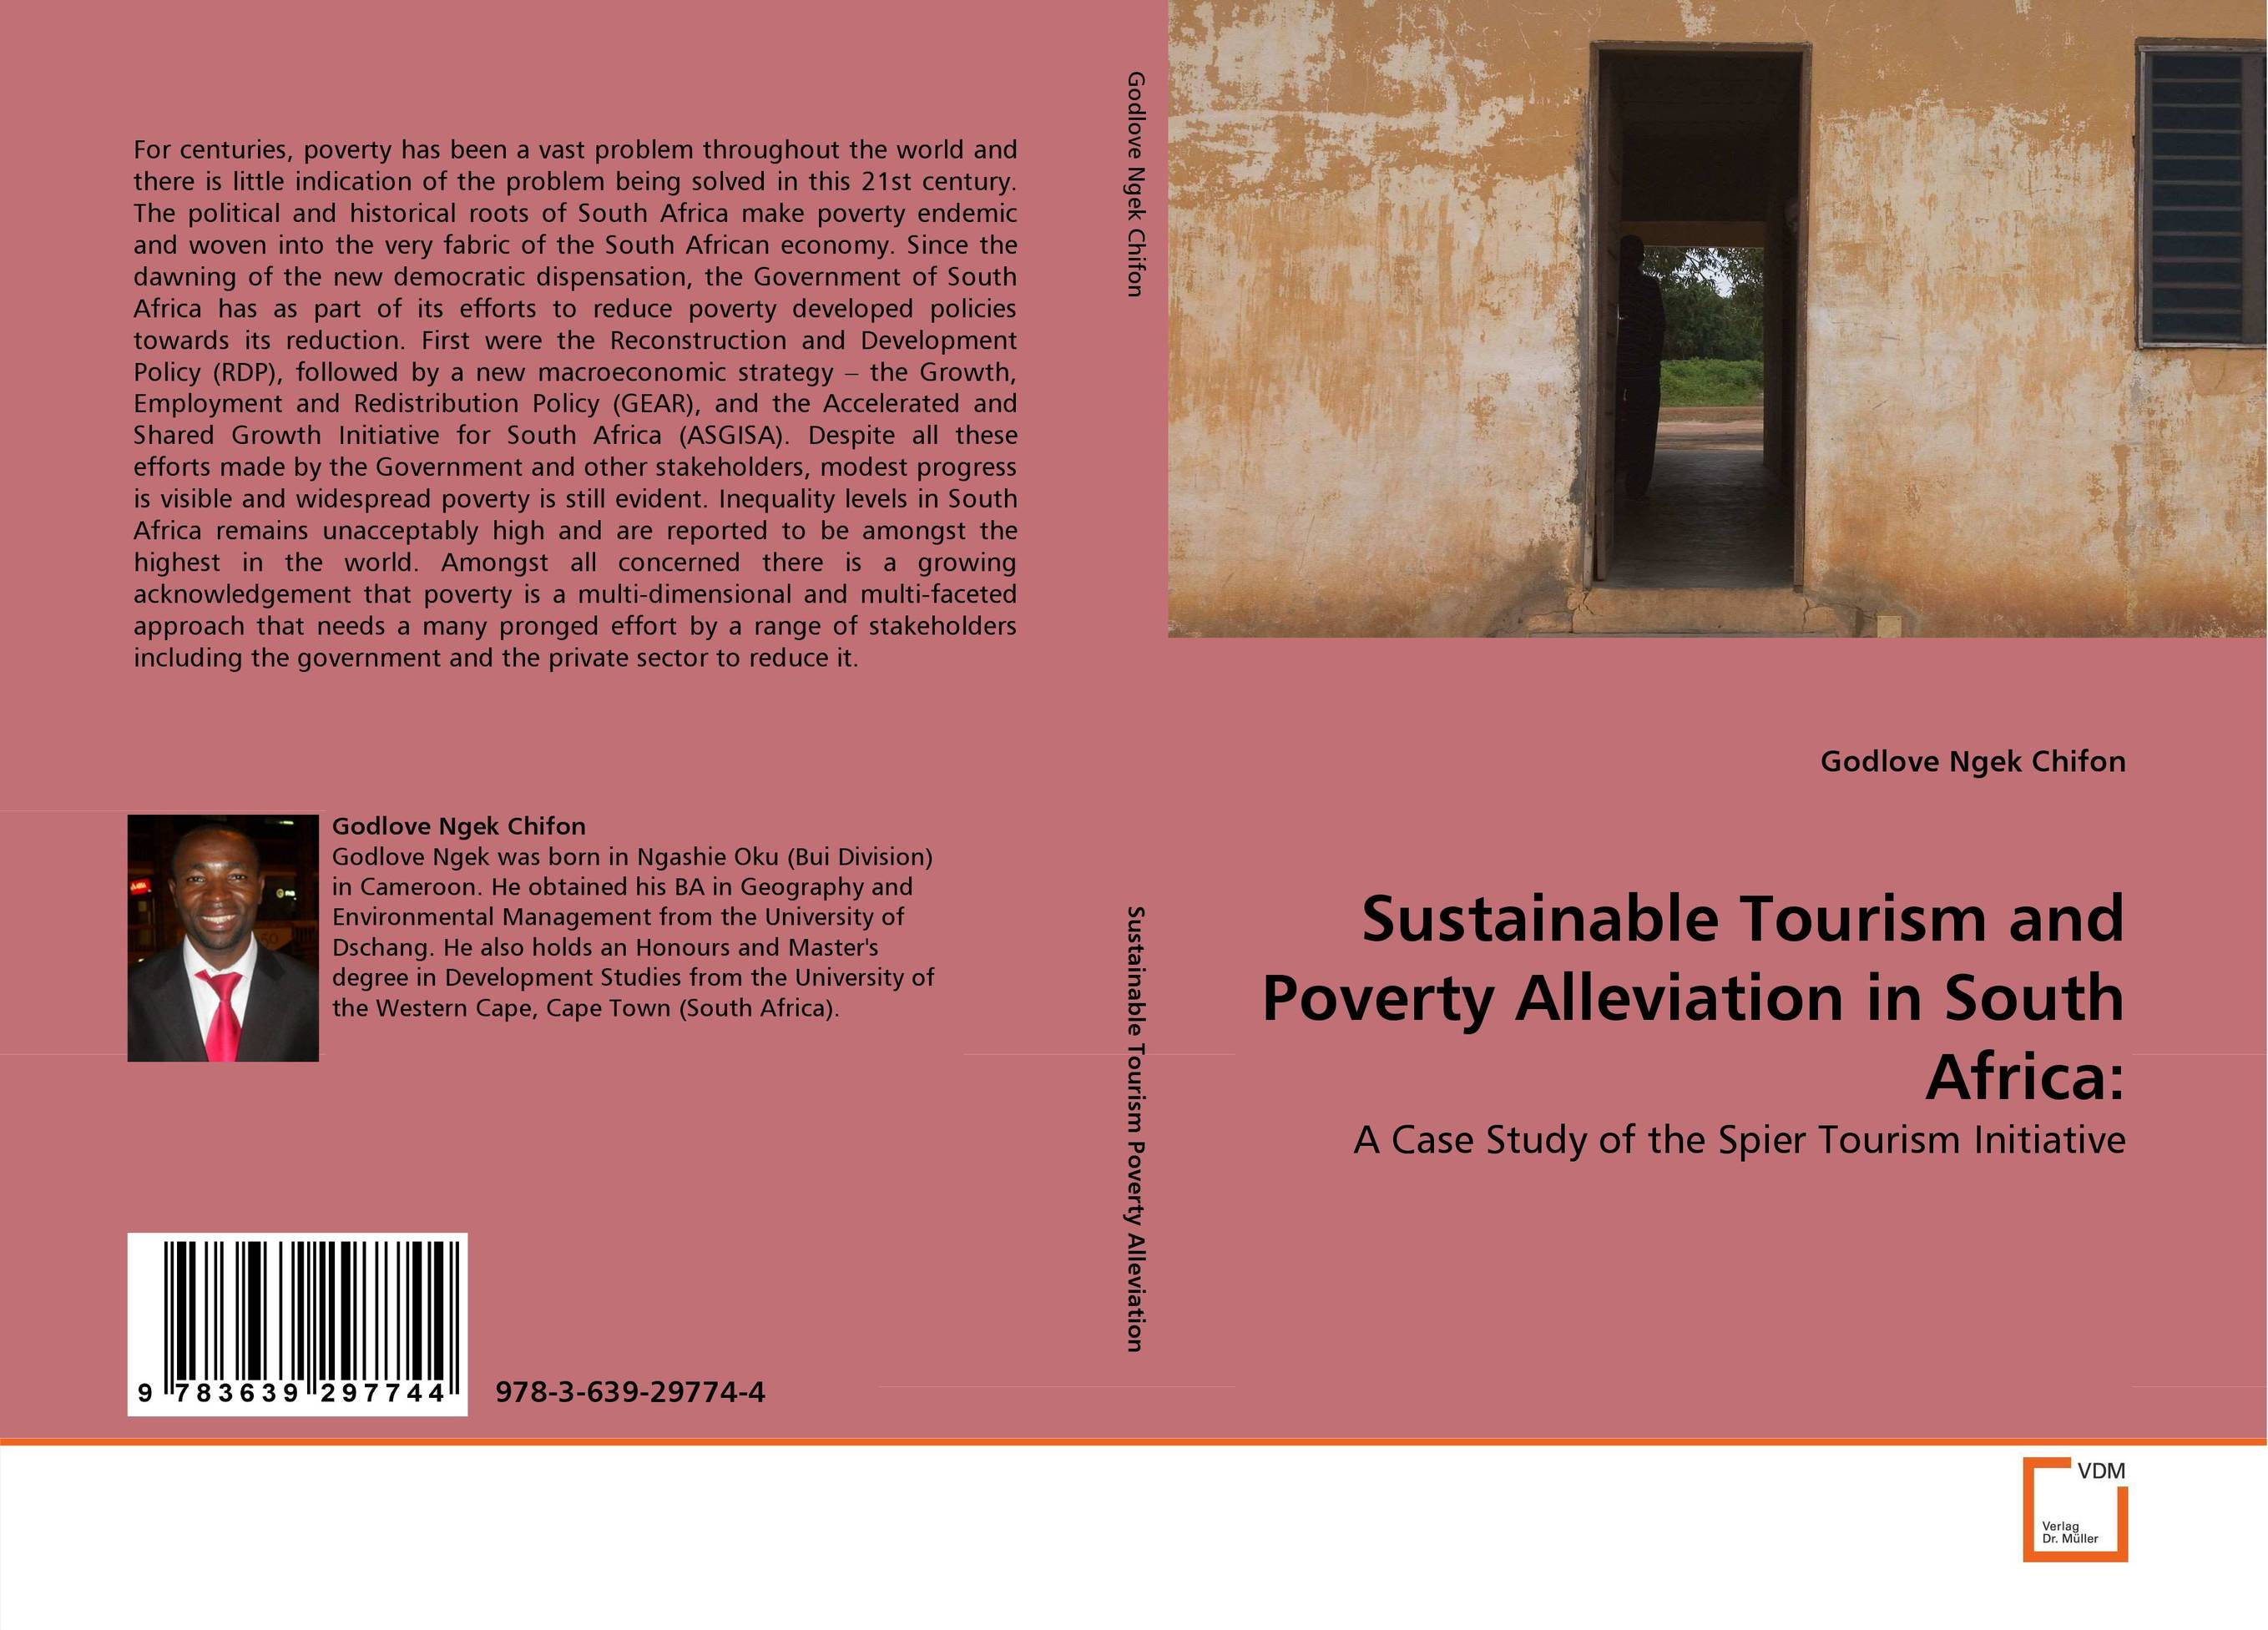 Sustainable Tourism and Poverty Alleviation in South Africa: role of ict in rural poverty alleviation